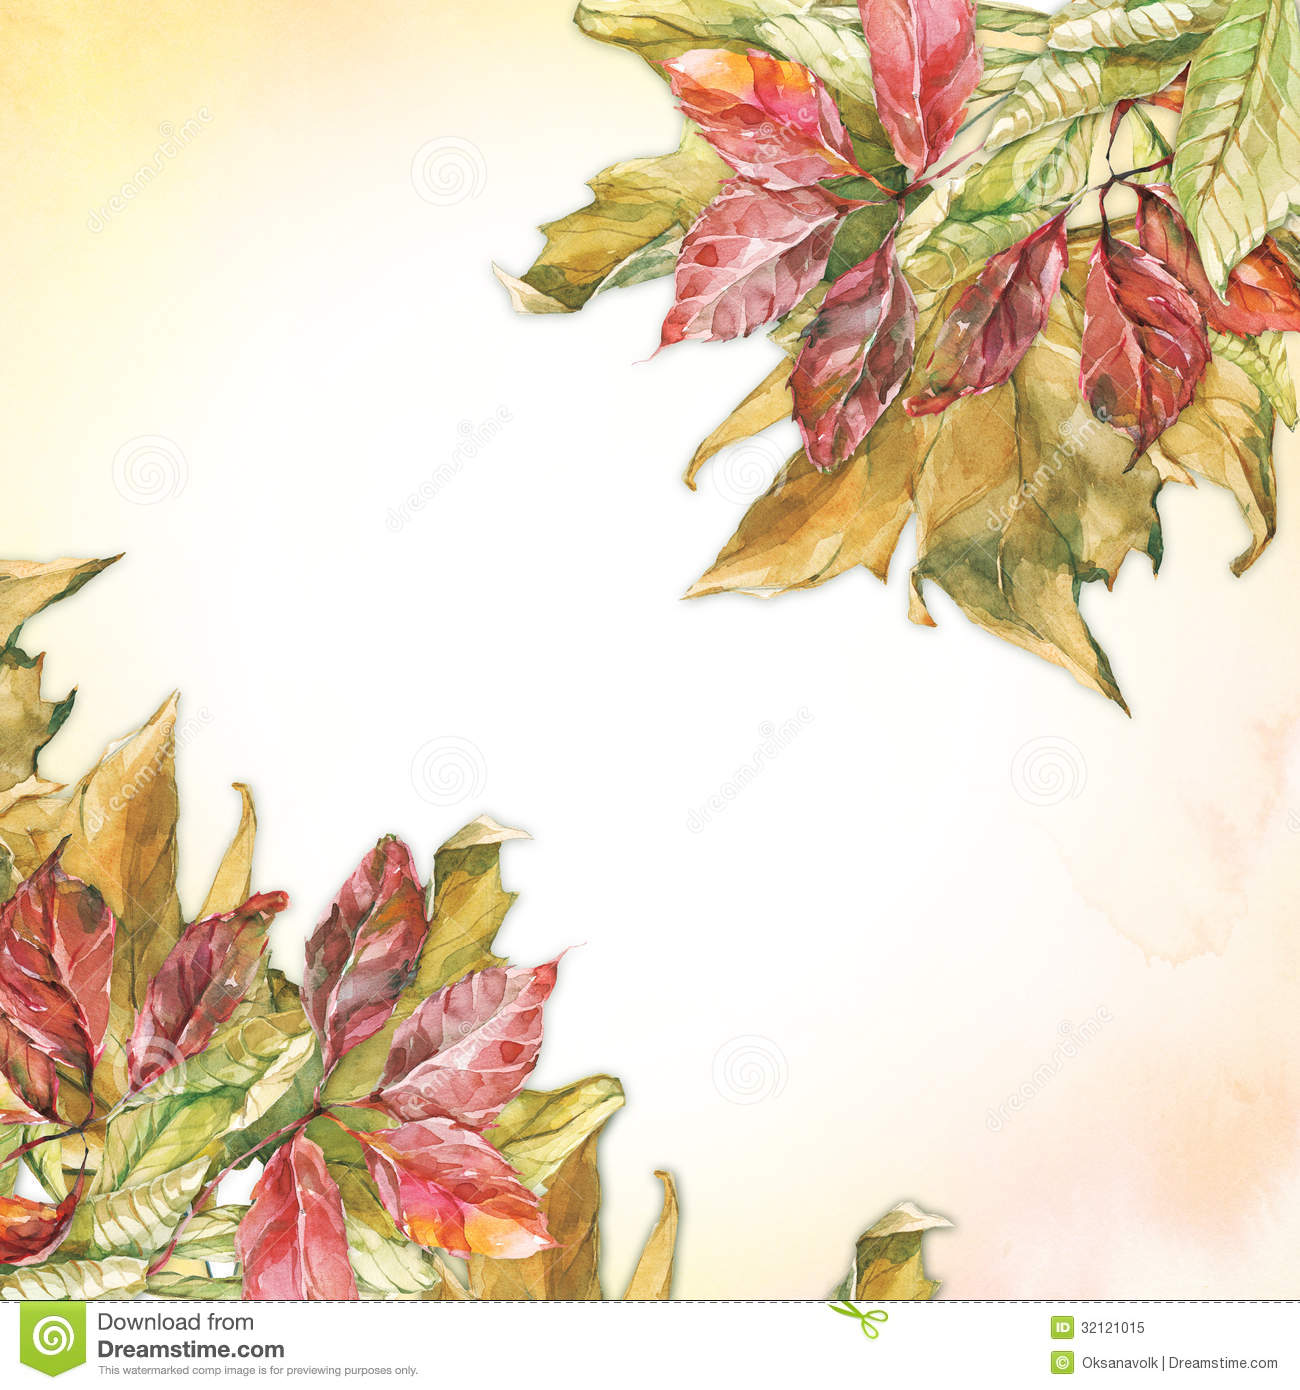 Watercolor Dry Autumn Leaves Corners